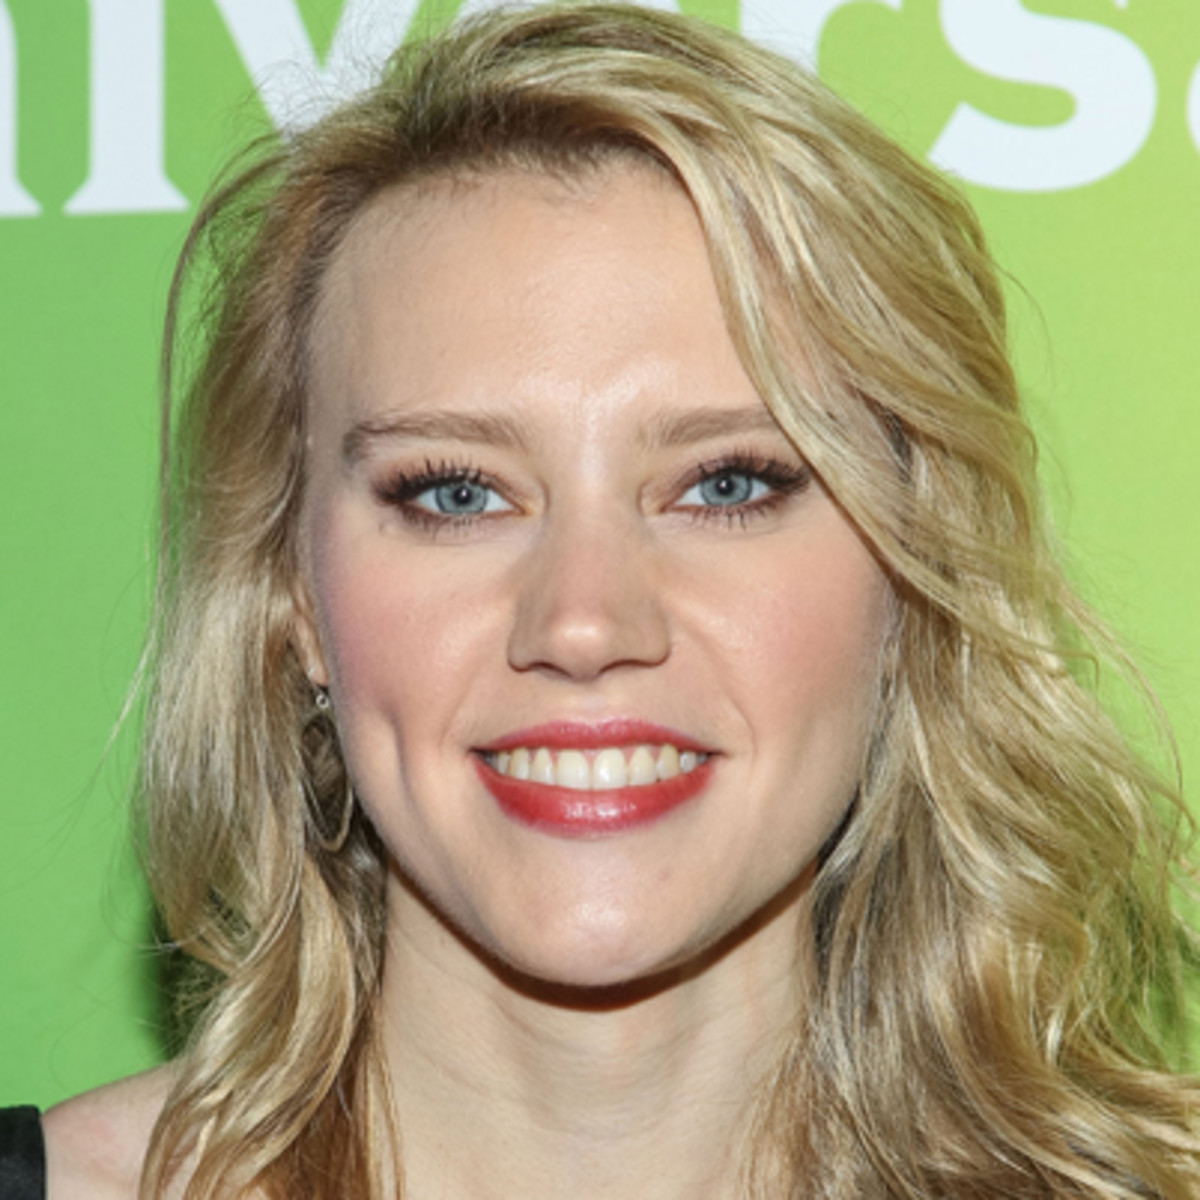 PASADENA, CA - APRIL 22:  Kate McKinnon attends the 2013 NBCUniversal Summer Press Day held at The Langham Huntington Hotel and Spa on April 22, 2013 in Pasadena, California.  (Photo by Paul A. Hebert/Getty Images)